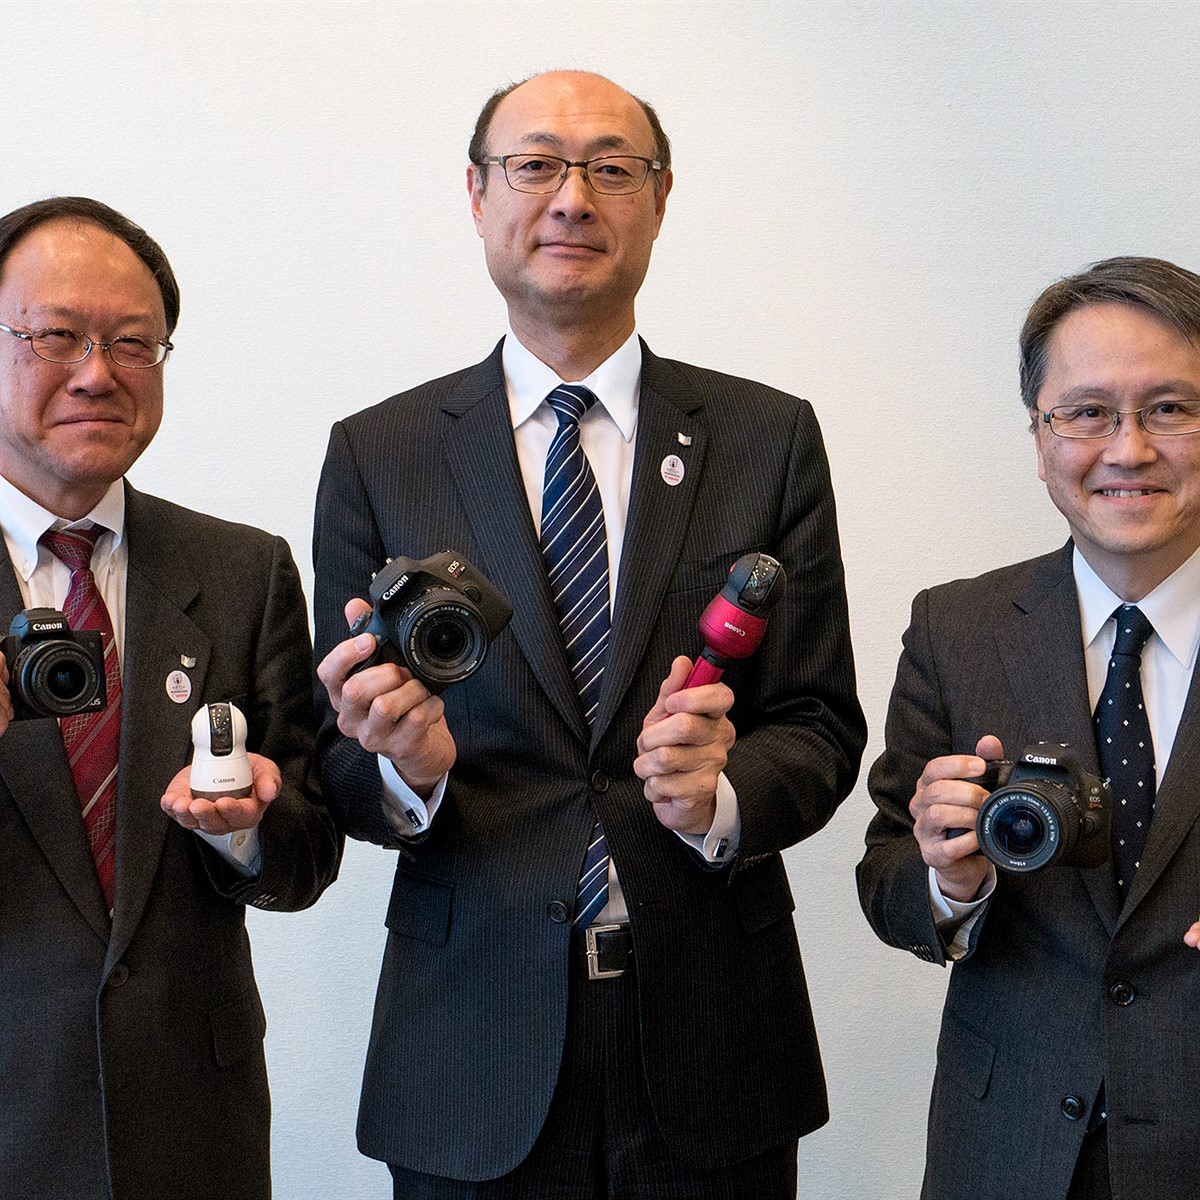 Canon interview: 'increased competition allows us to level